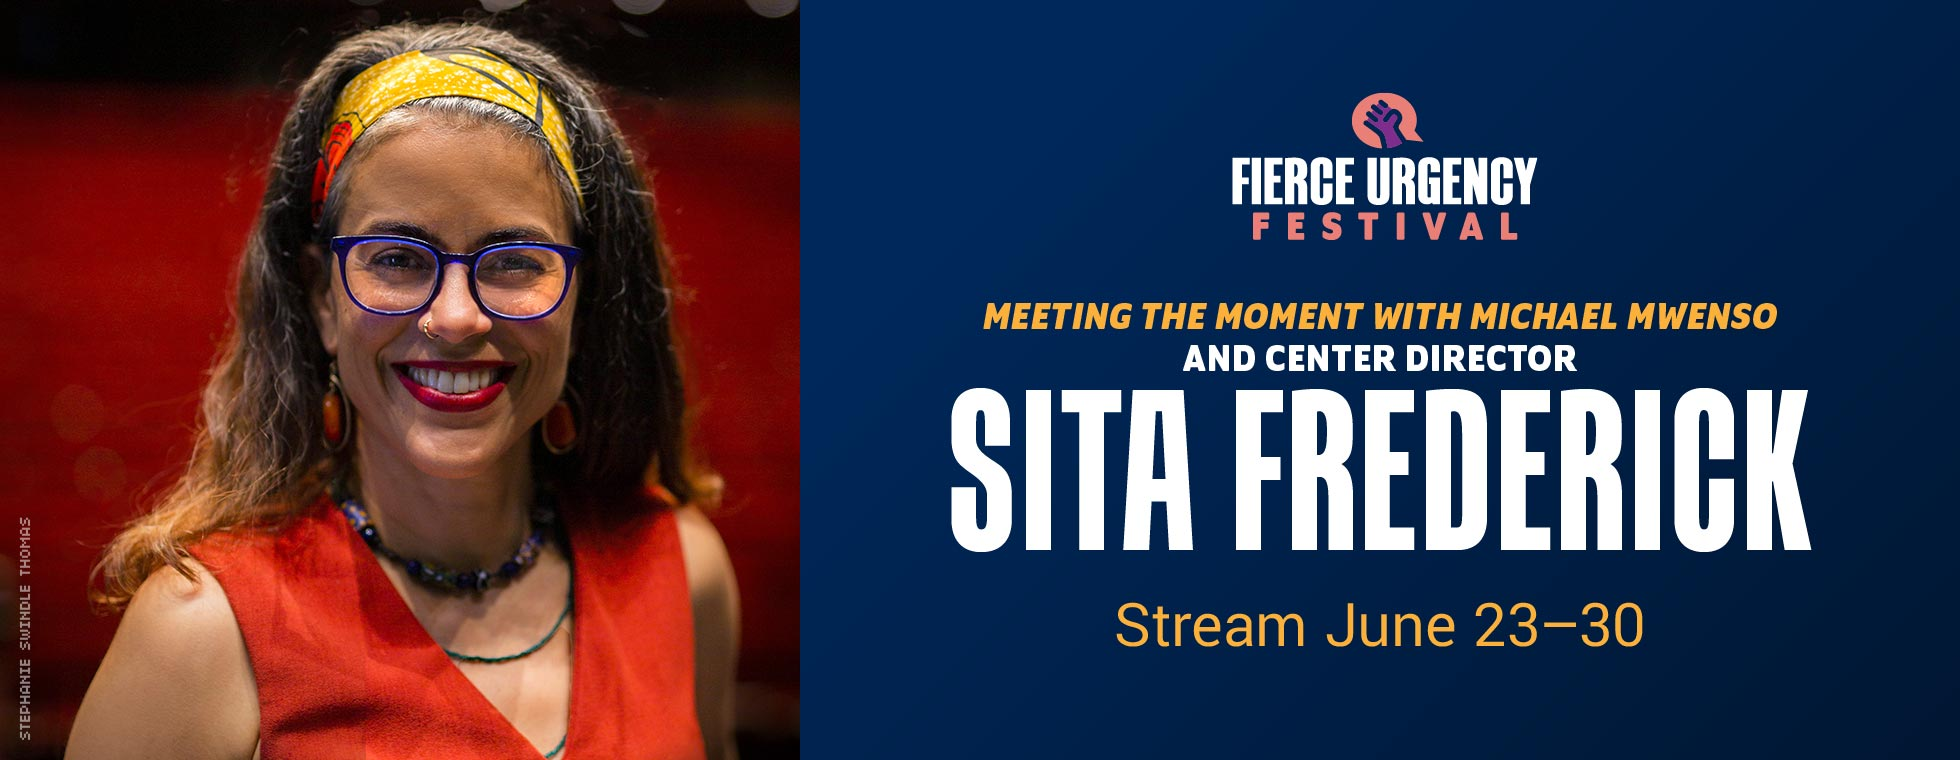 Meeting the Moment with Michael Mwenso and center director Sita Frederick. Stream June 23–30, 2021